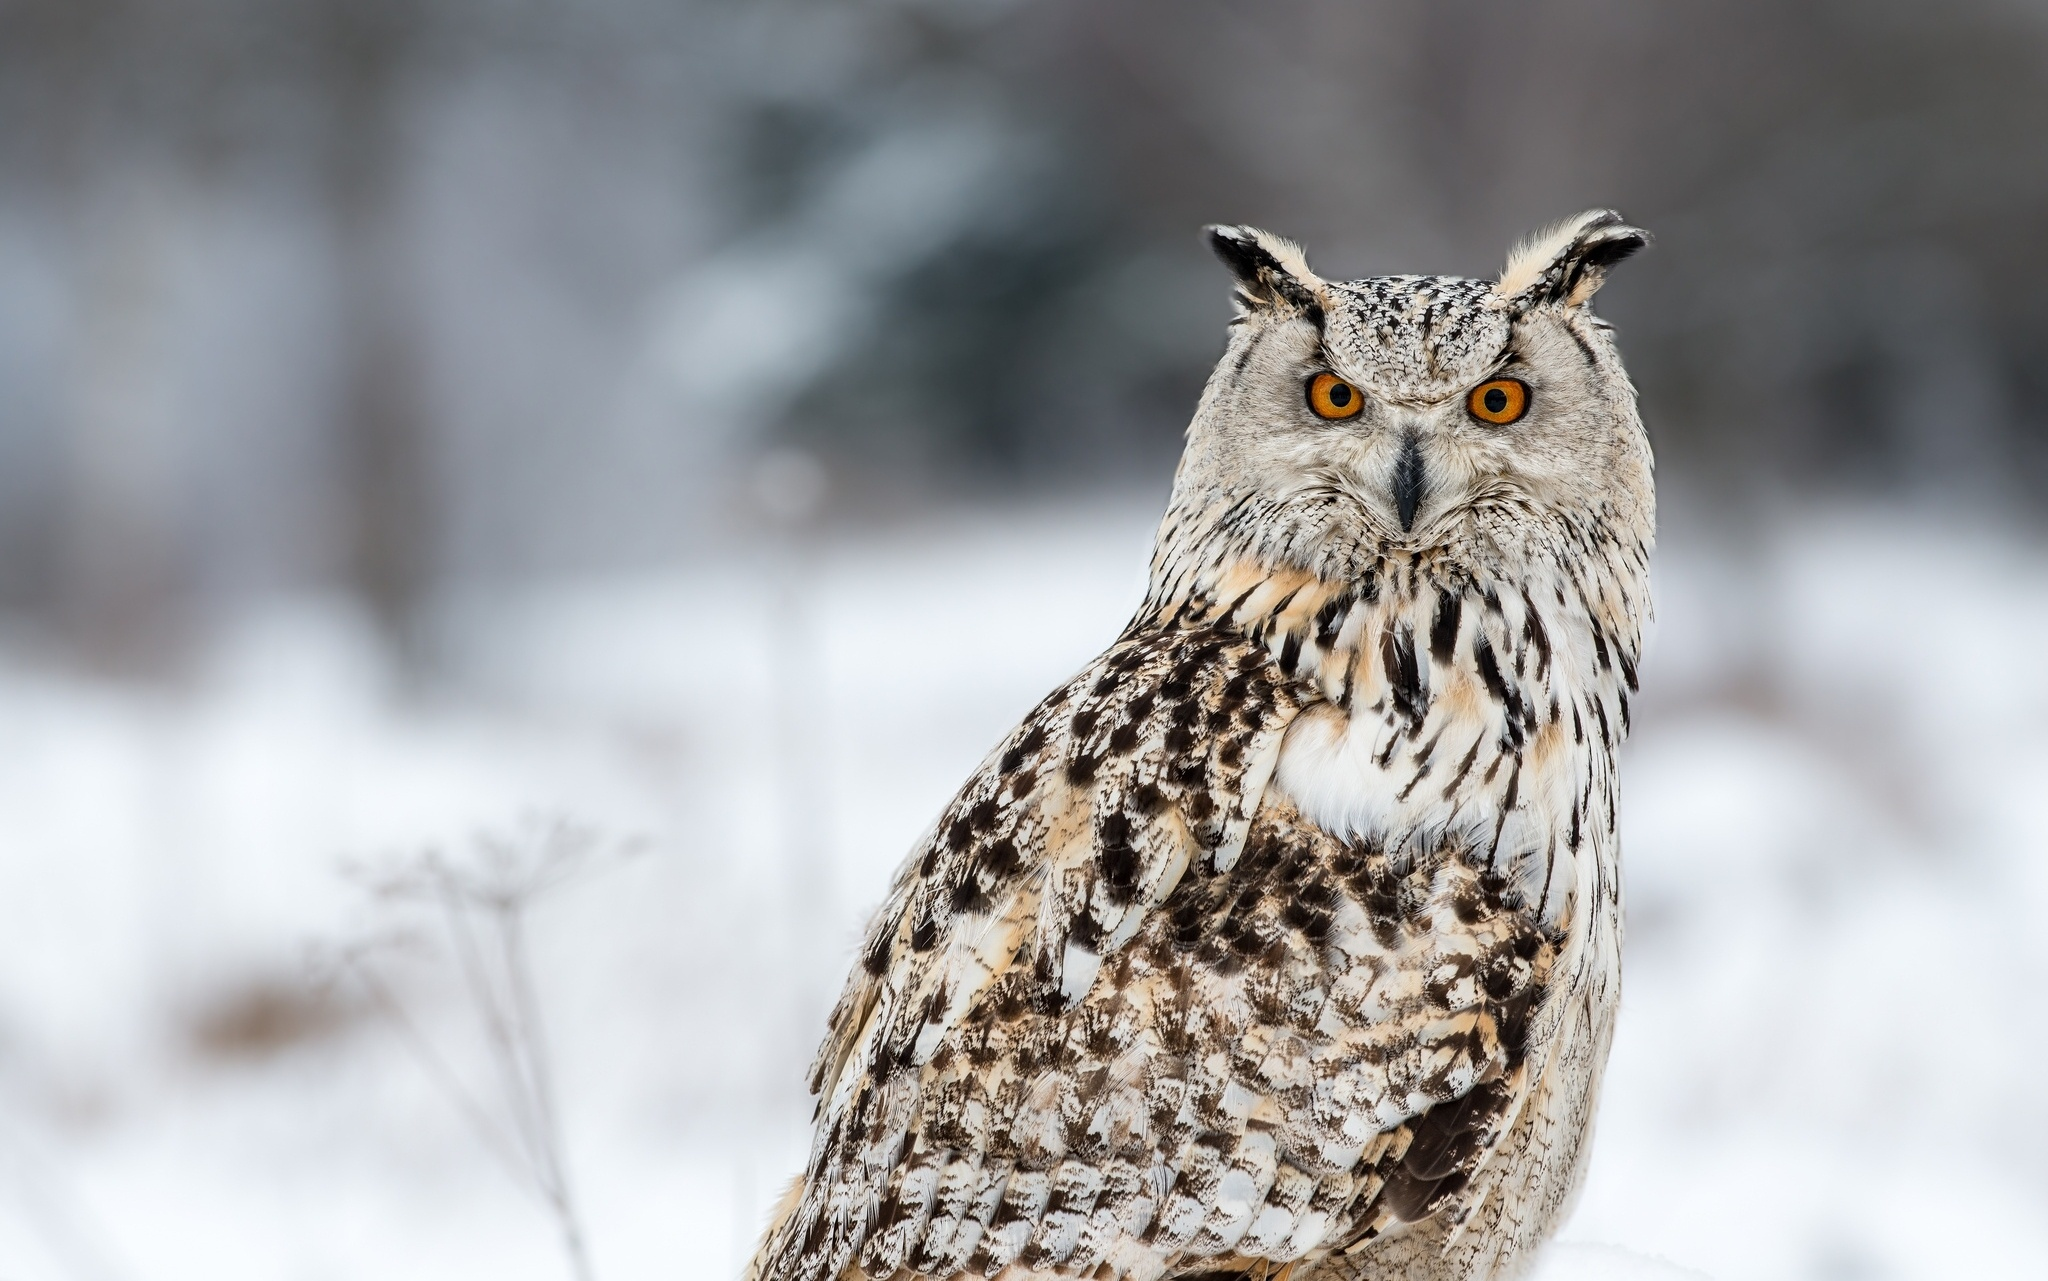 Owl Full HD Wallpaper and Background 2048x1281 ID430521